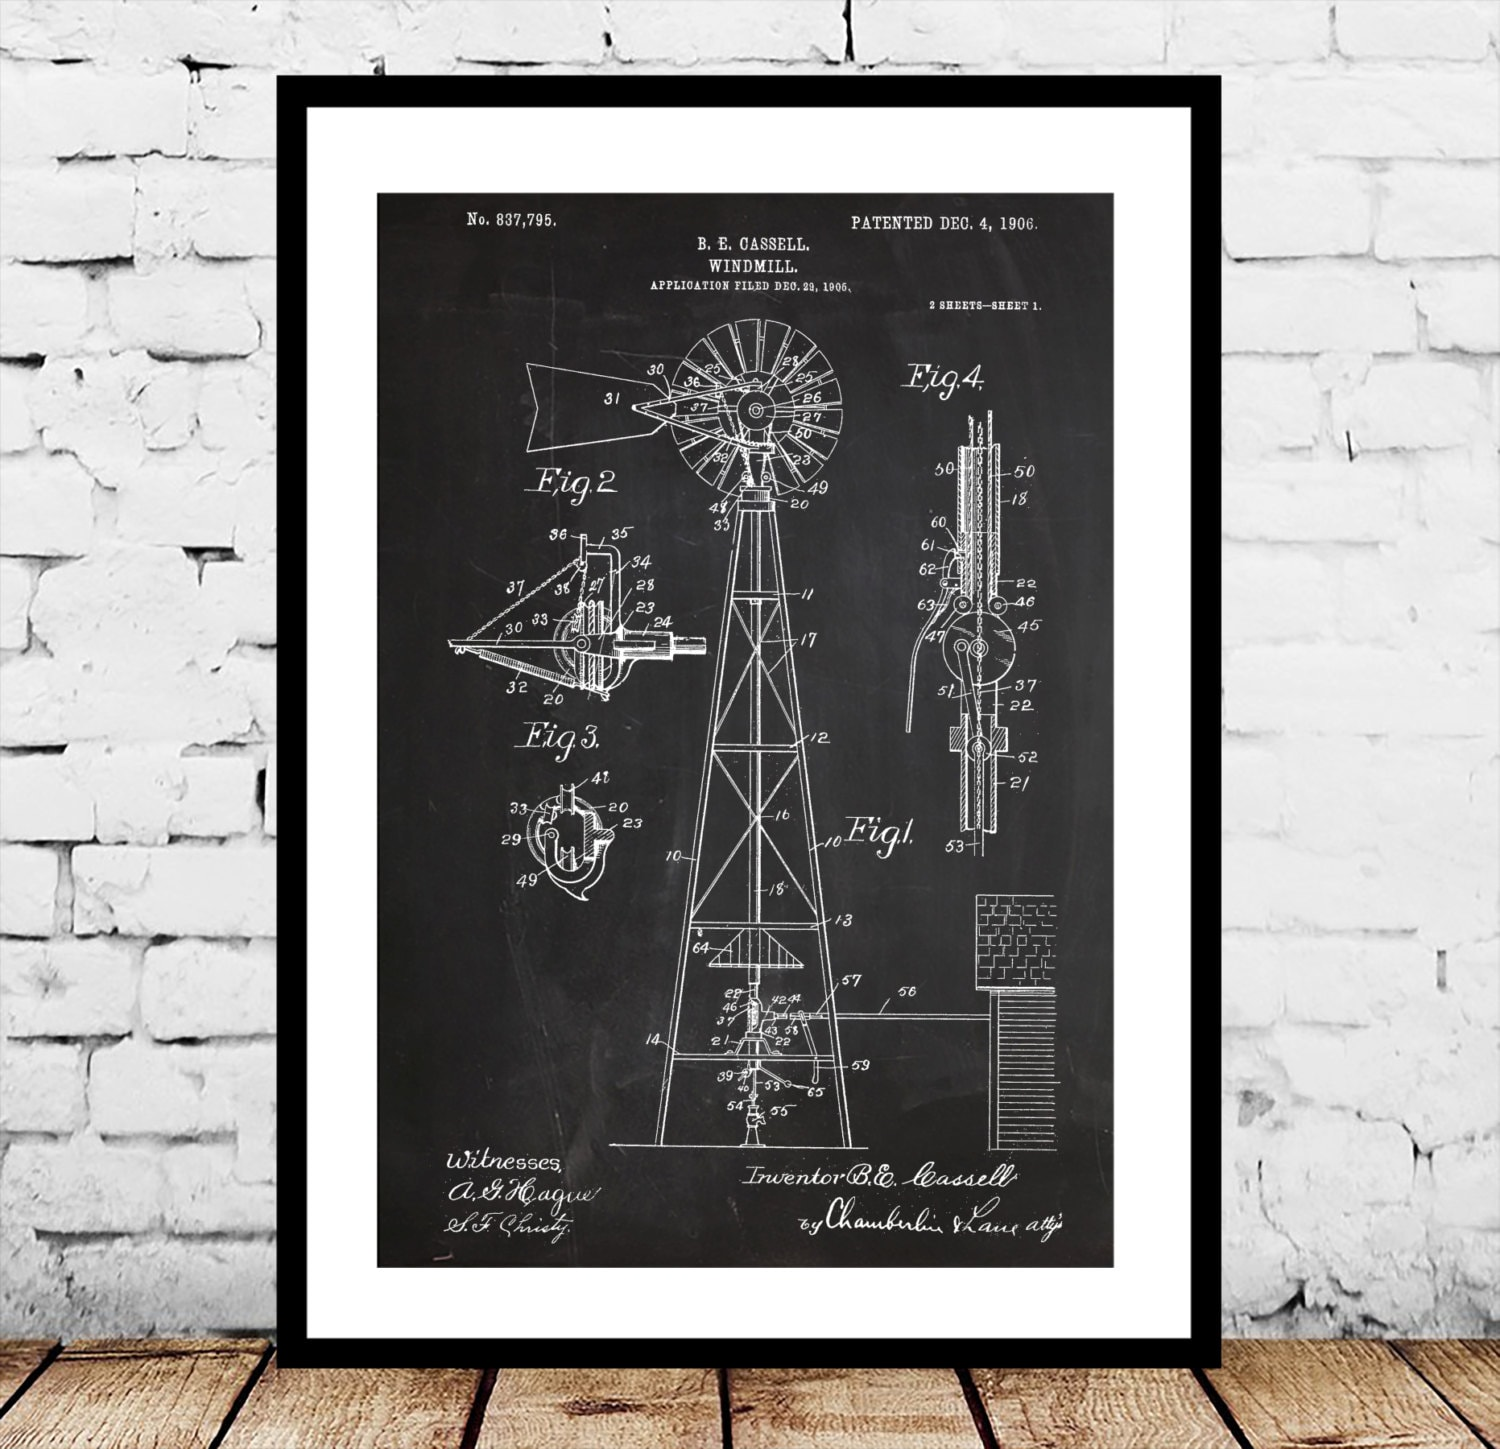 Windmill patent windmill poster windmill blueprint windmill print windmill patent windmill poster windmill blueprint windmill print windmill art windmill decor malvernweather Images